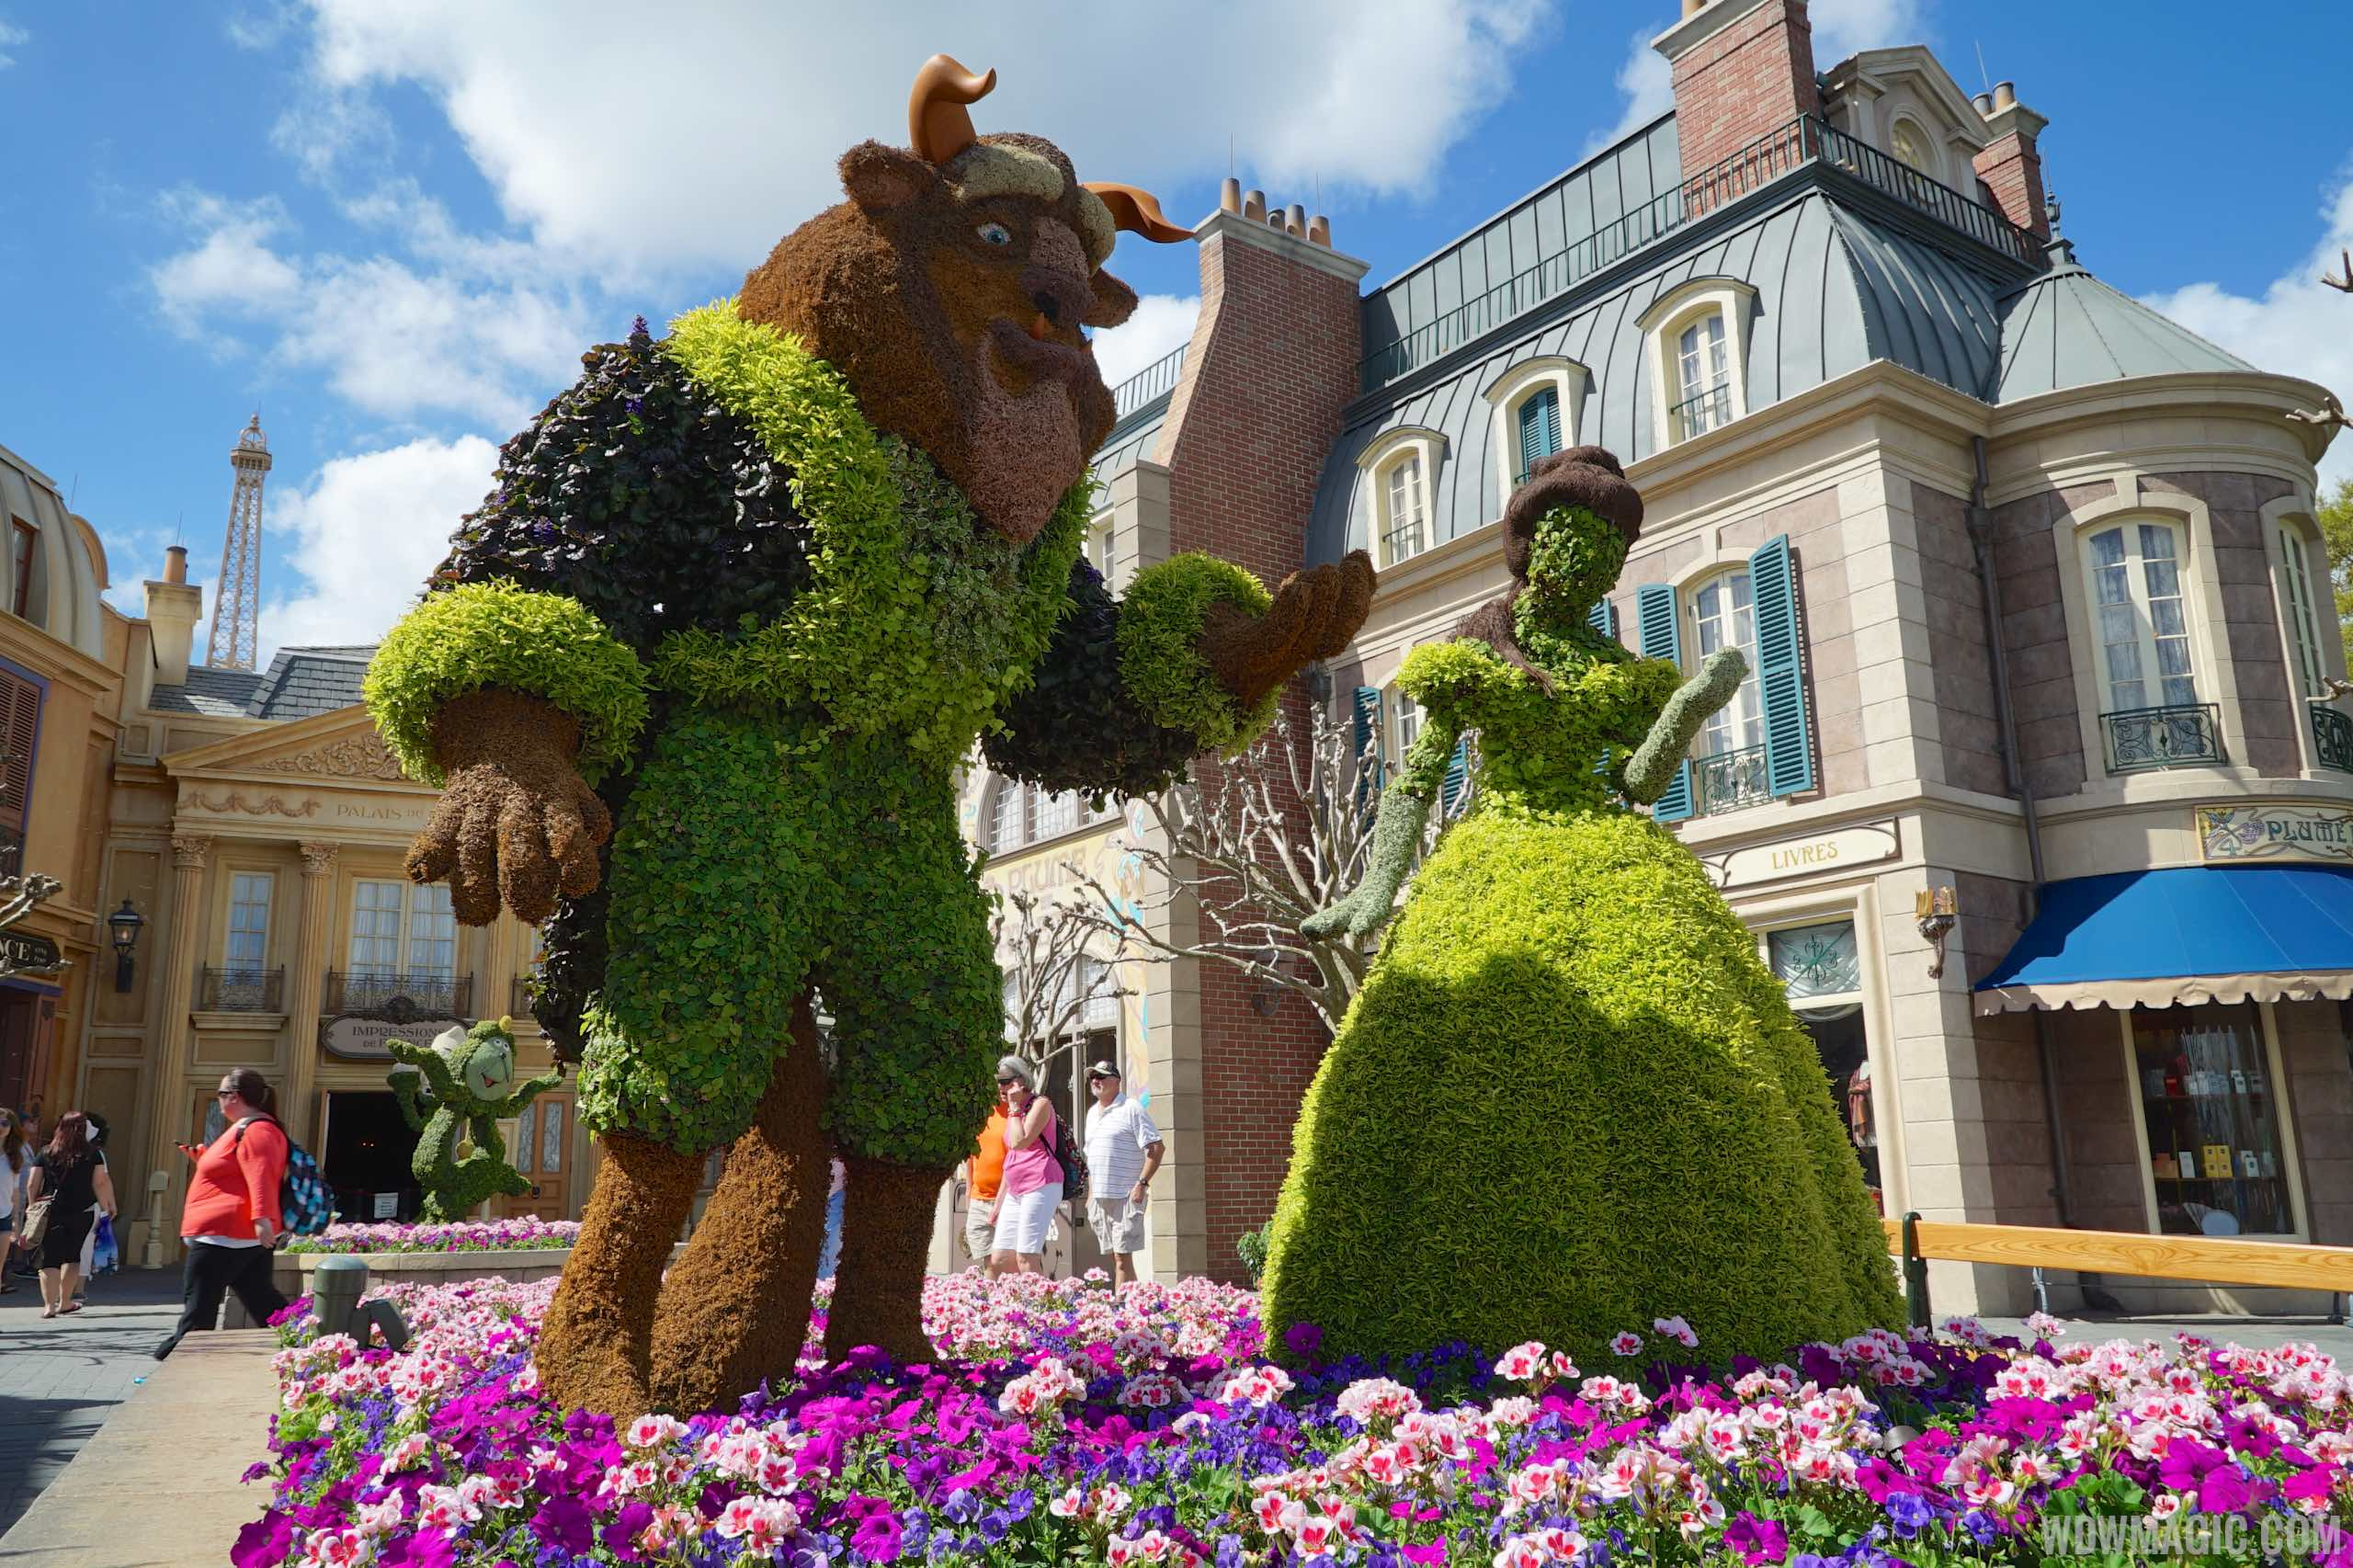 2015 Epcot International Flower And Garden Festival Opening Day Tour Photo 58 Of 74